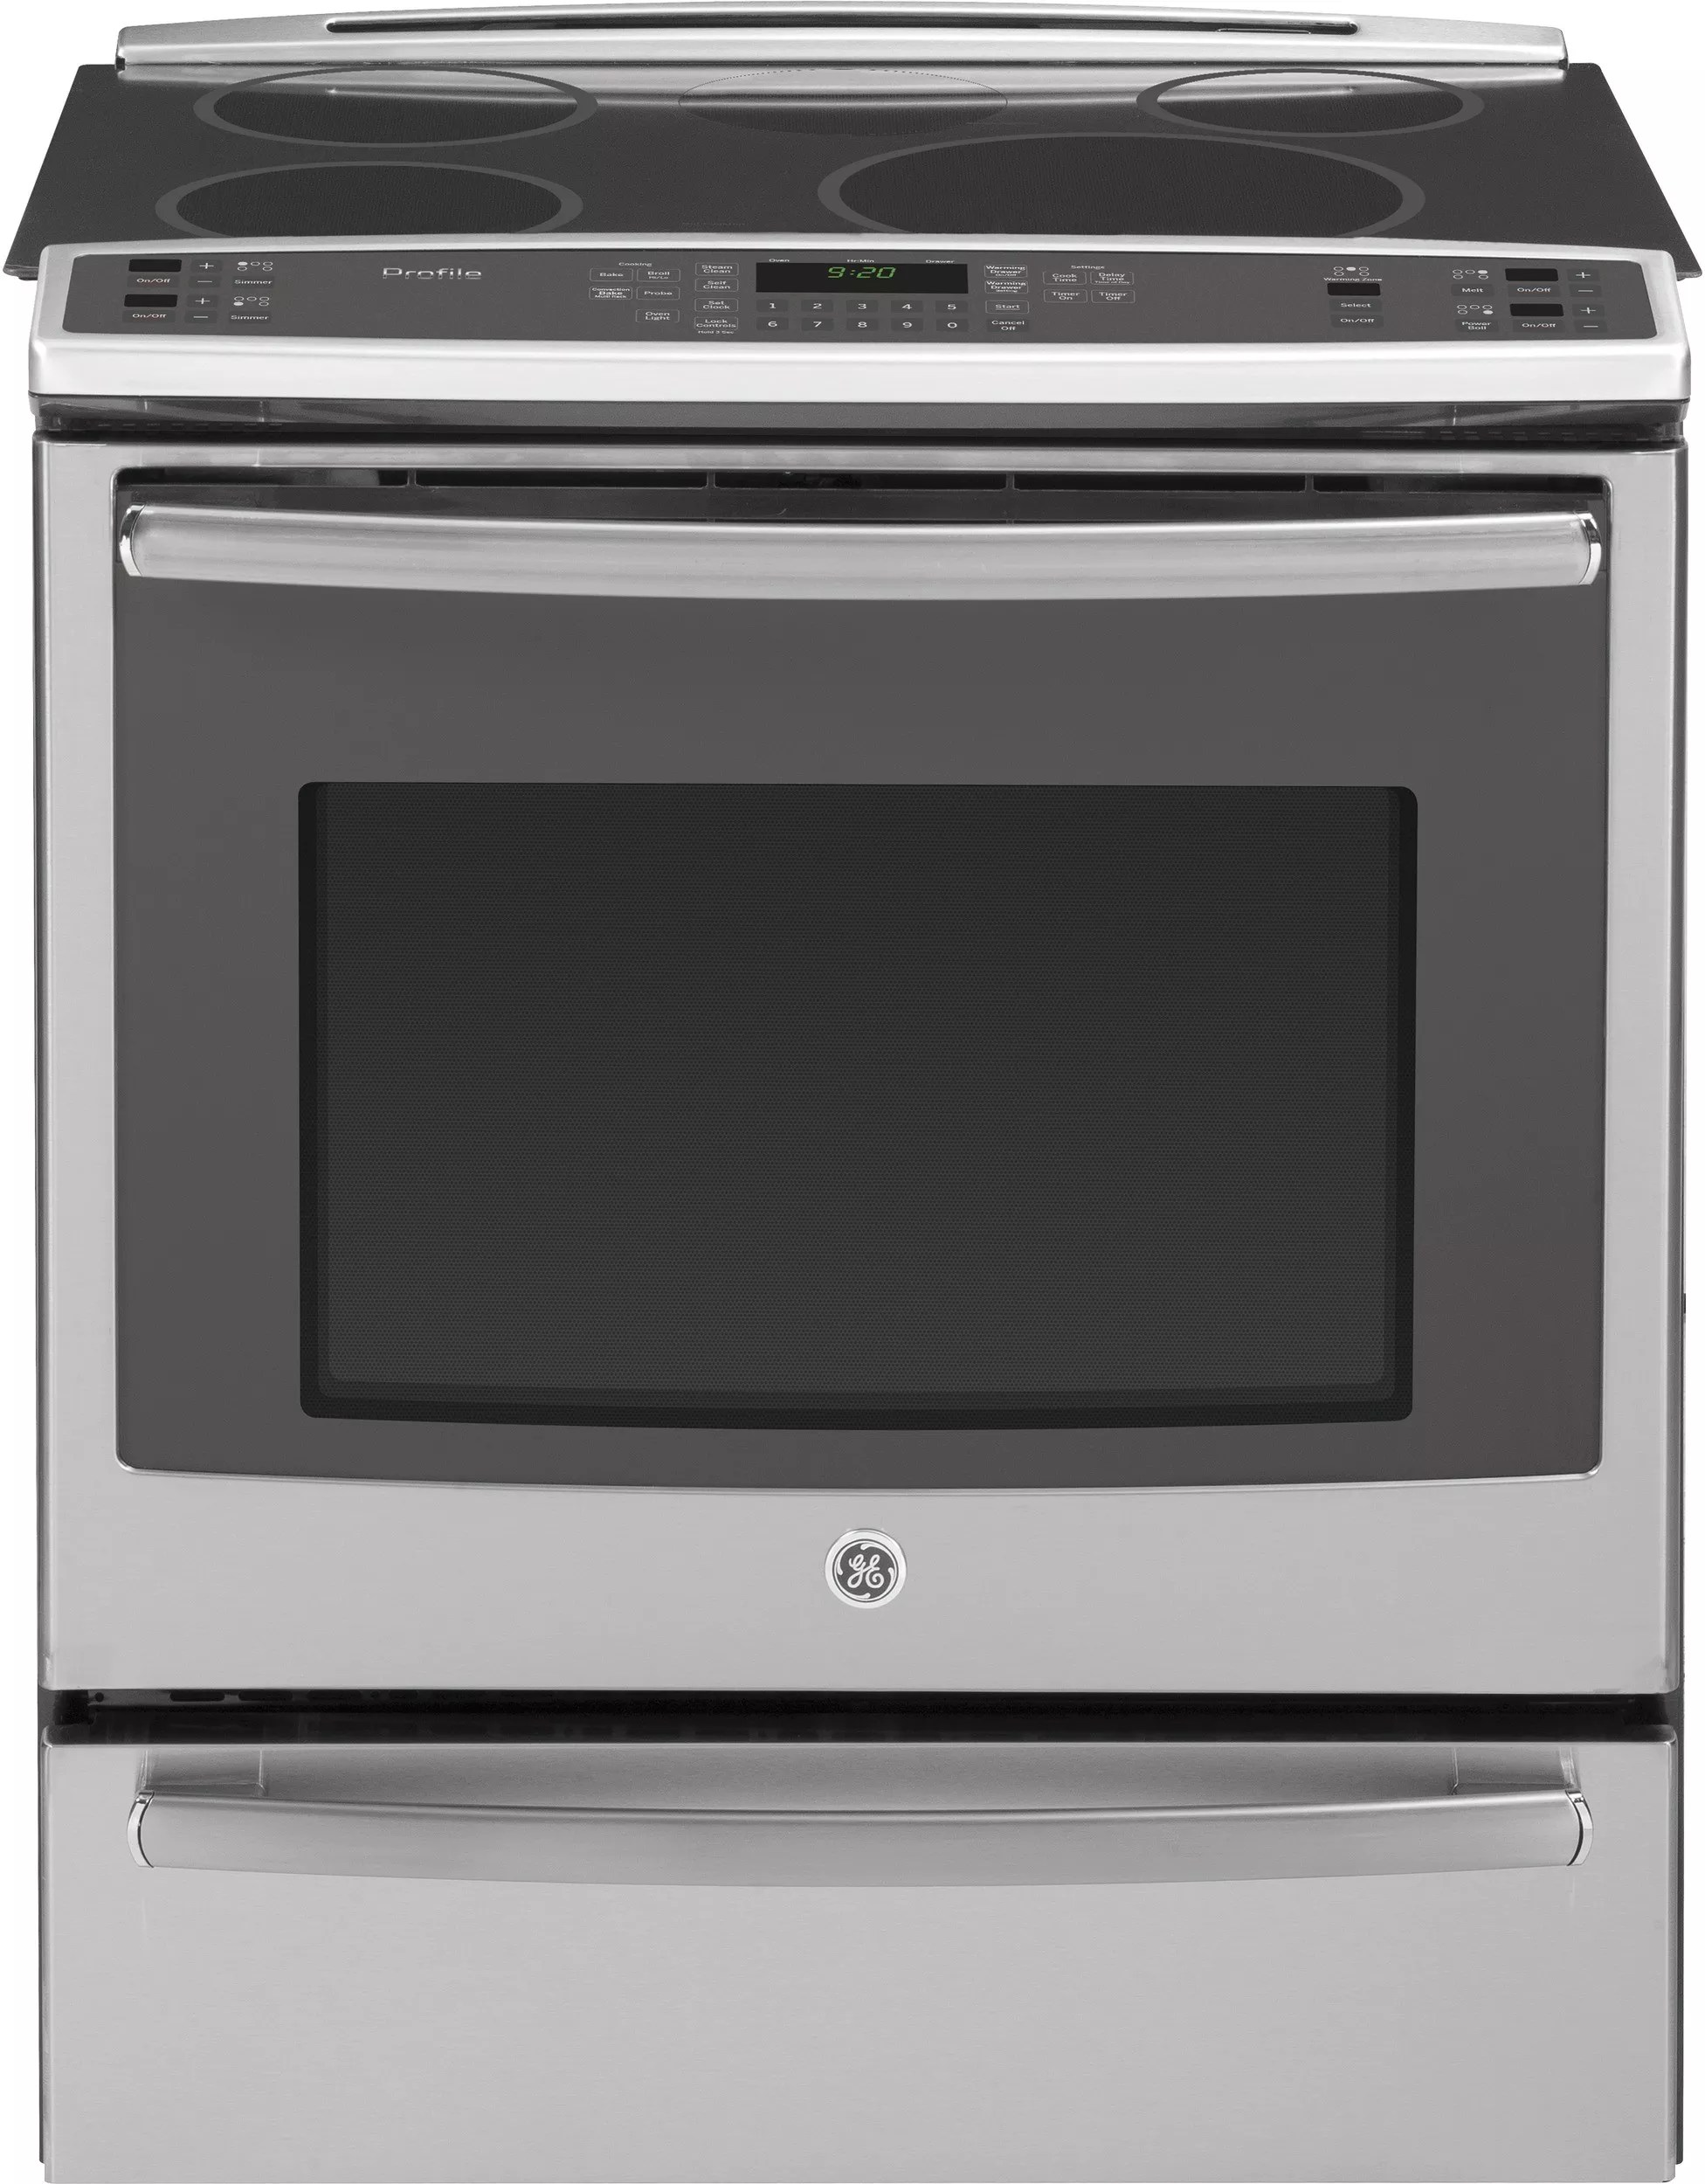 Countertop Warming Drawer Ge Phs920sfss 30 Inch Slide In Induction Range With True